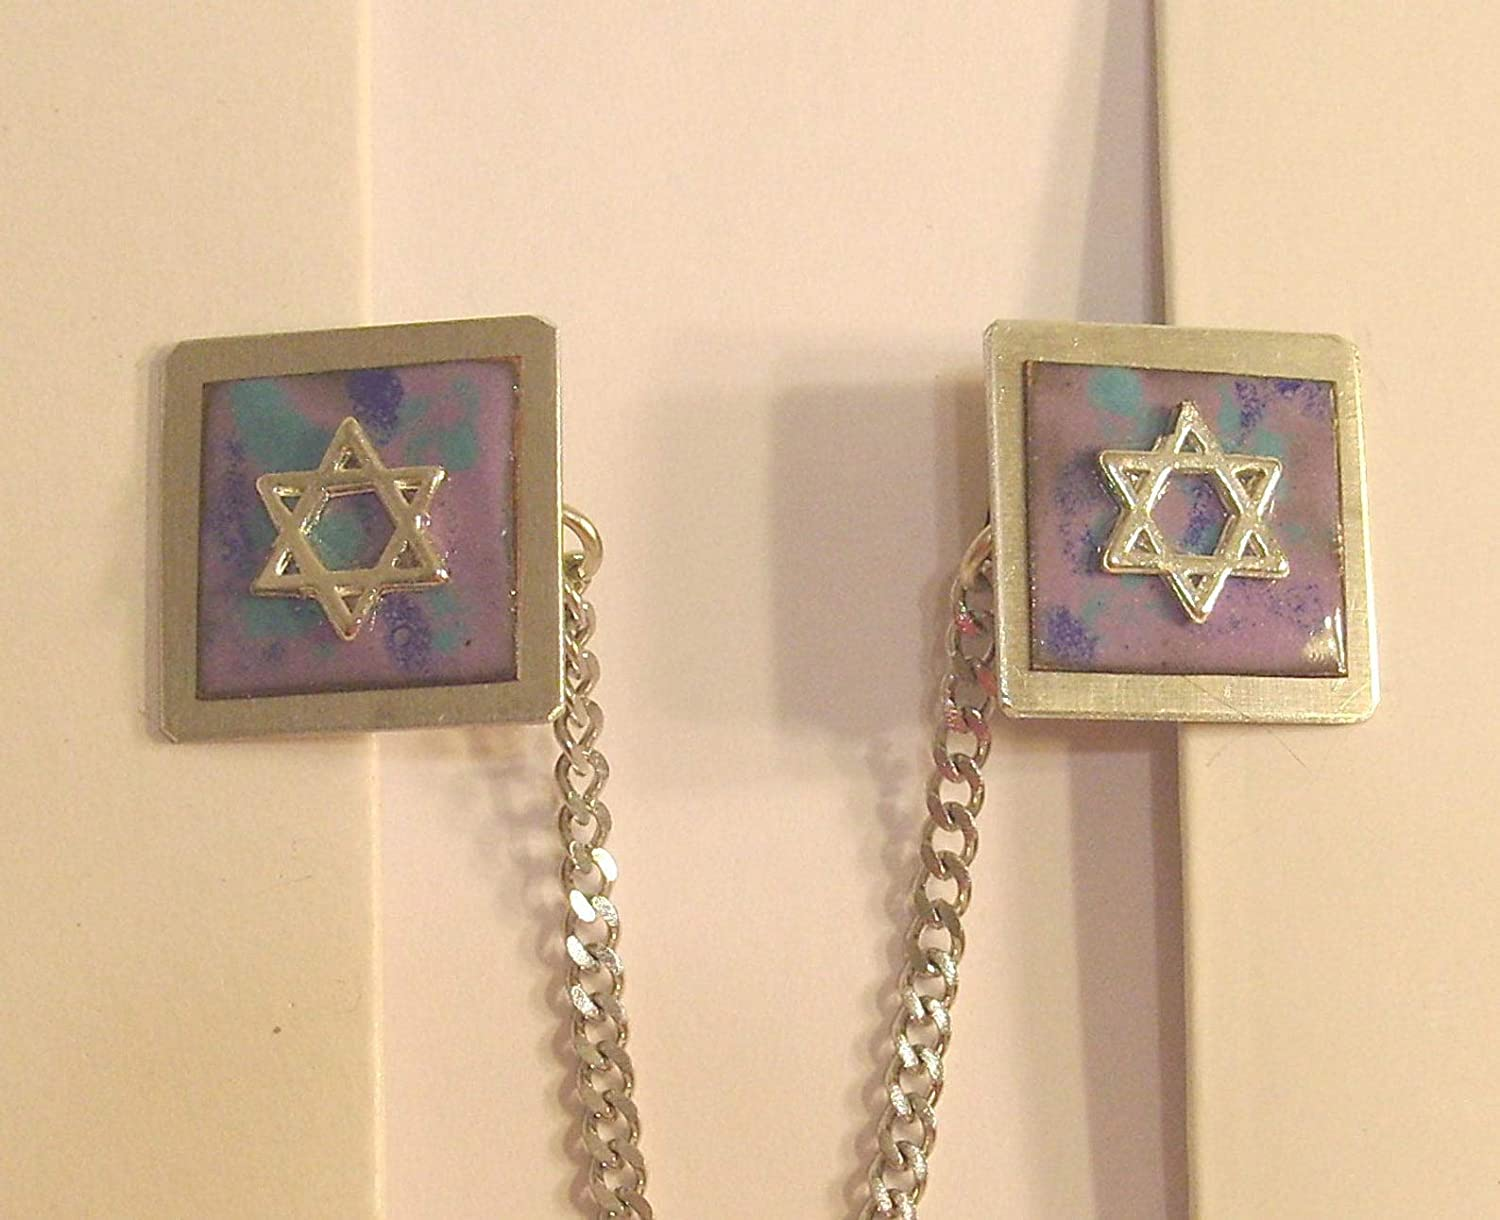 Tallit Clips Chicago Mall - Star of David Blue on Max 69% OFF Lavender Ename AquaCopper